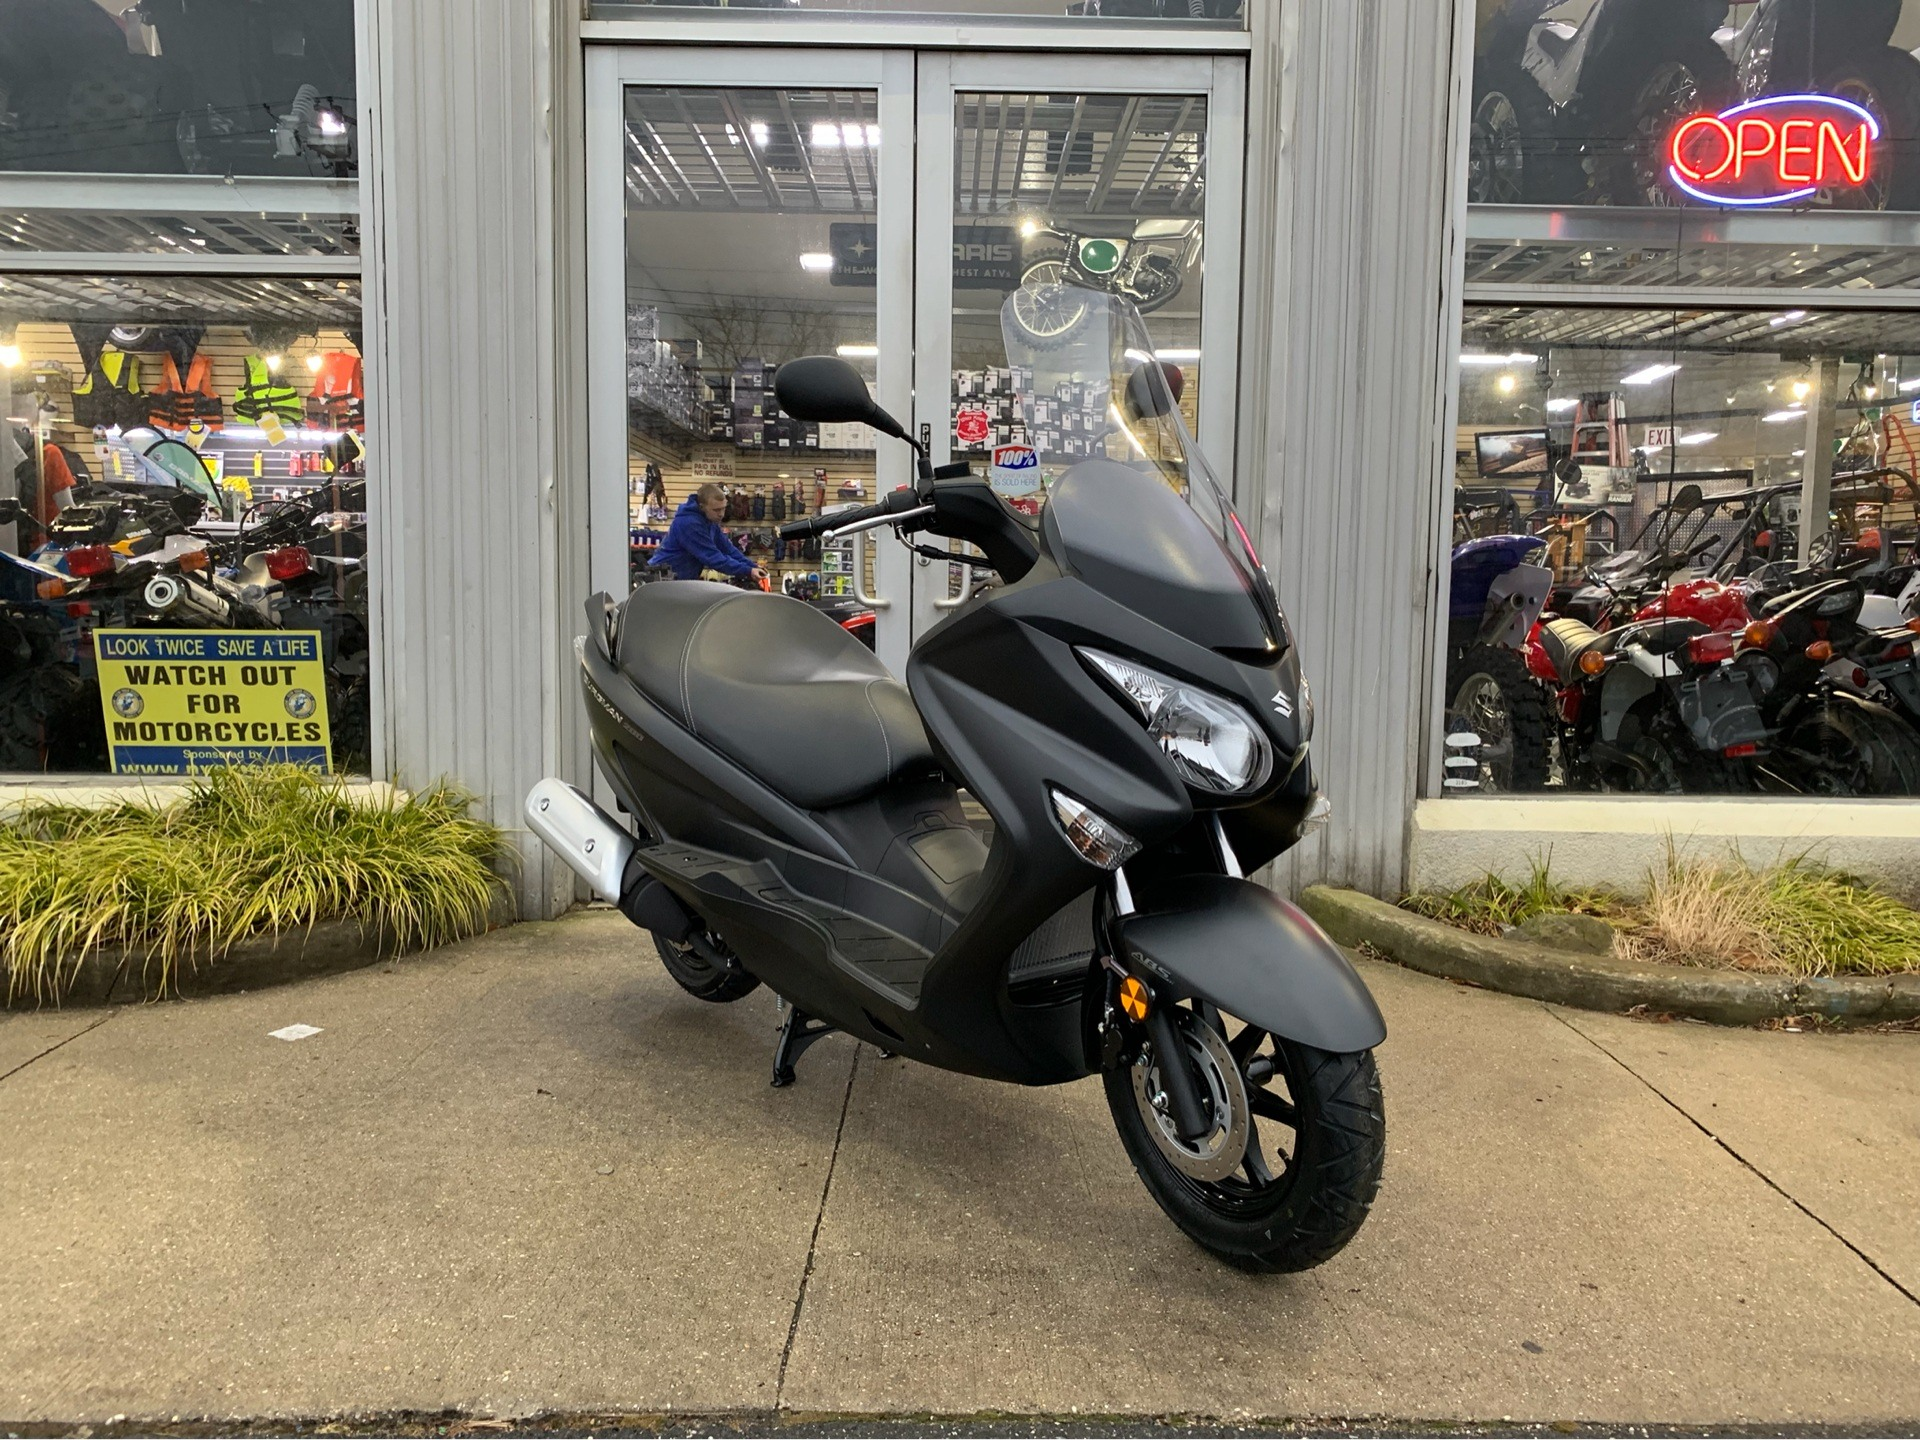 2019 Suzuki Burgman 200 in Huntington Station, New York